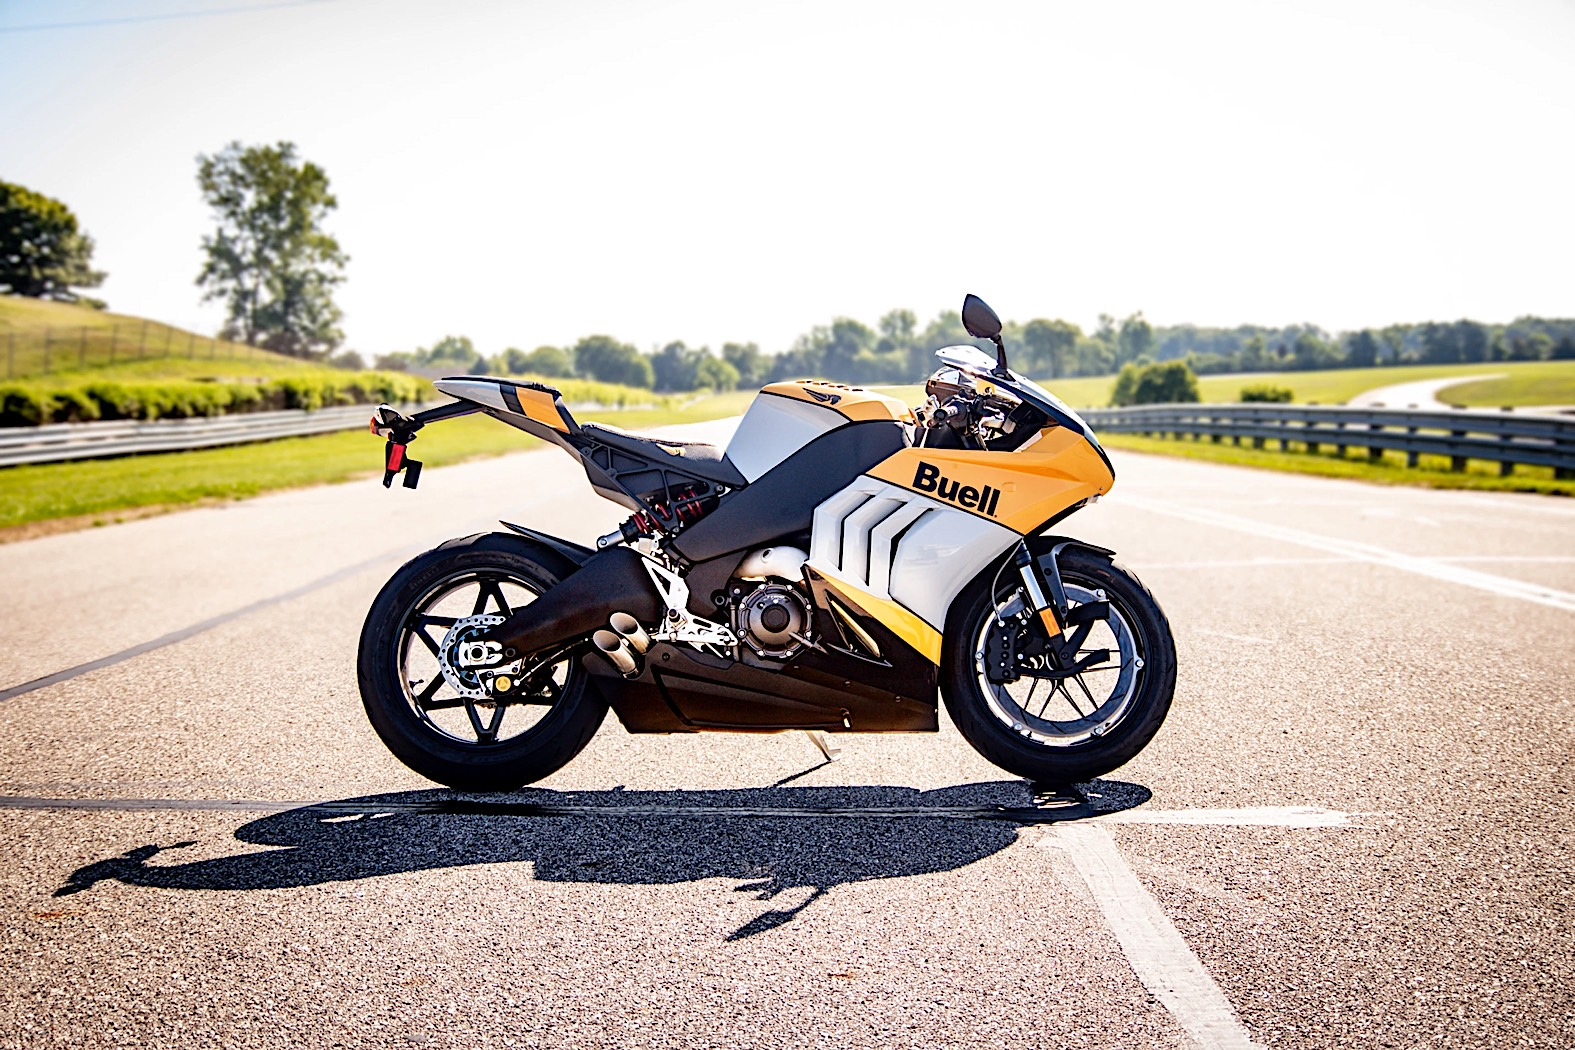 buell-hammerhead-1190-starts-rolling-on-november-1,-reservations-to-open-soon